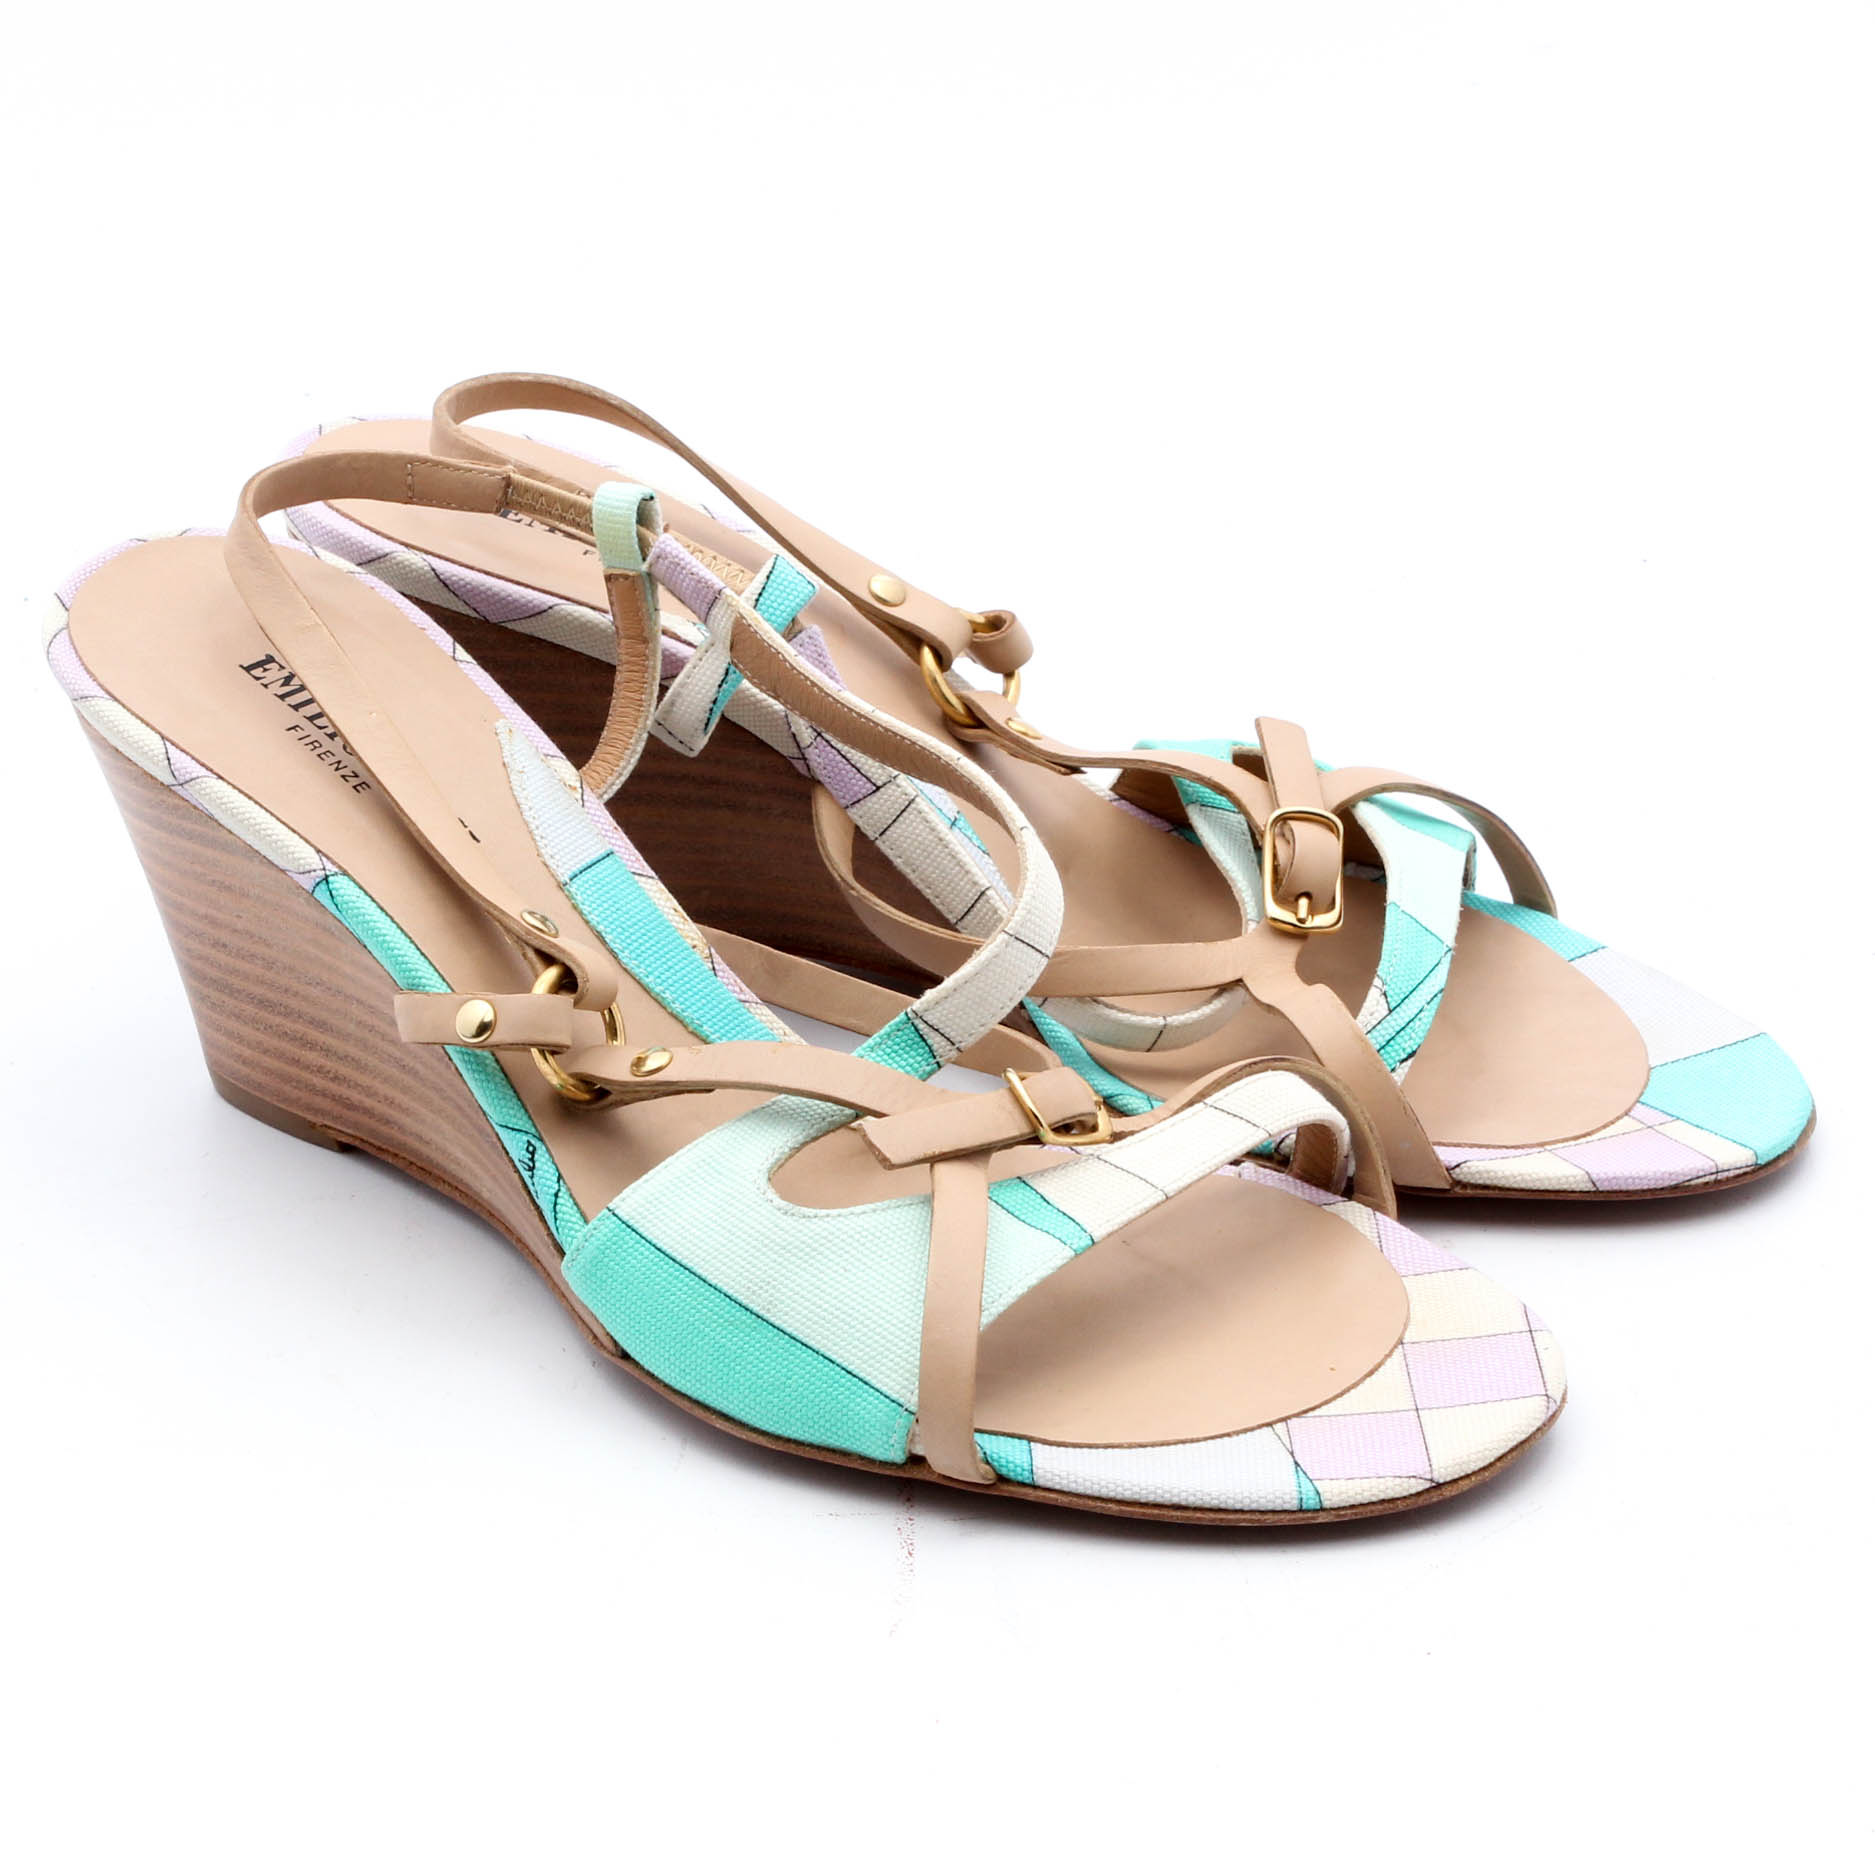 Canvas Italy Leather Wedge Firenze Emilio Pucci SandalsMade In And TlFK1c3J